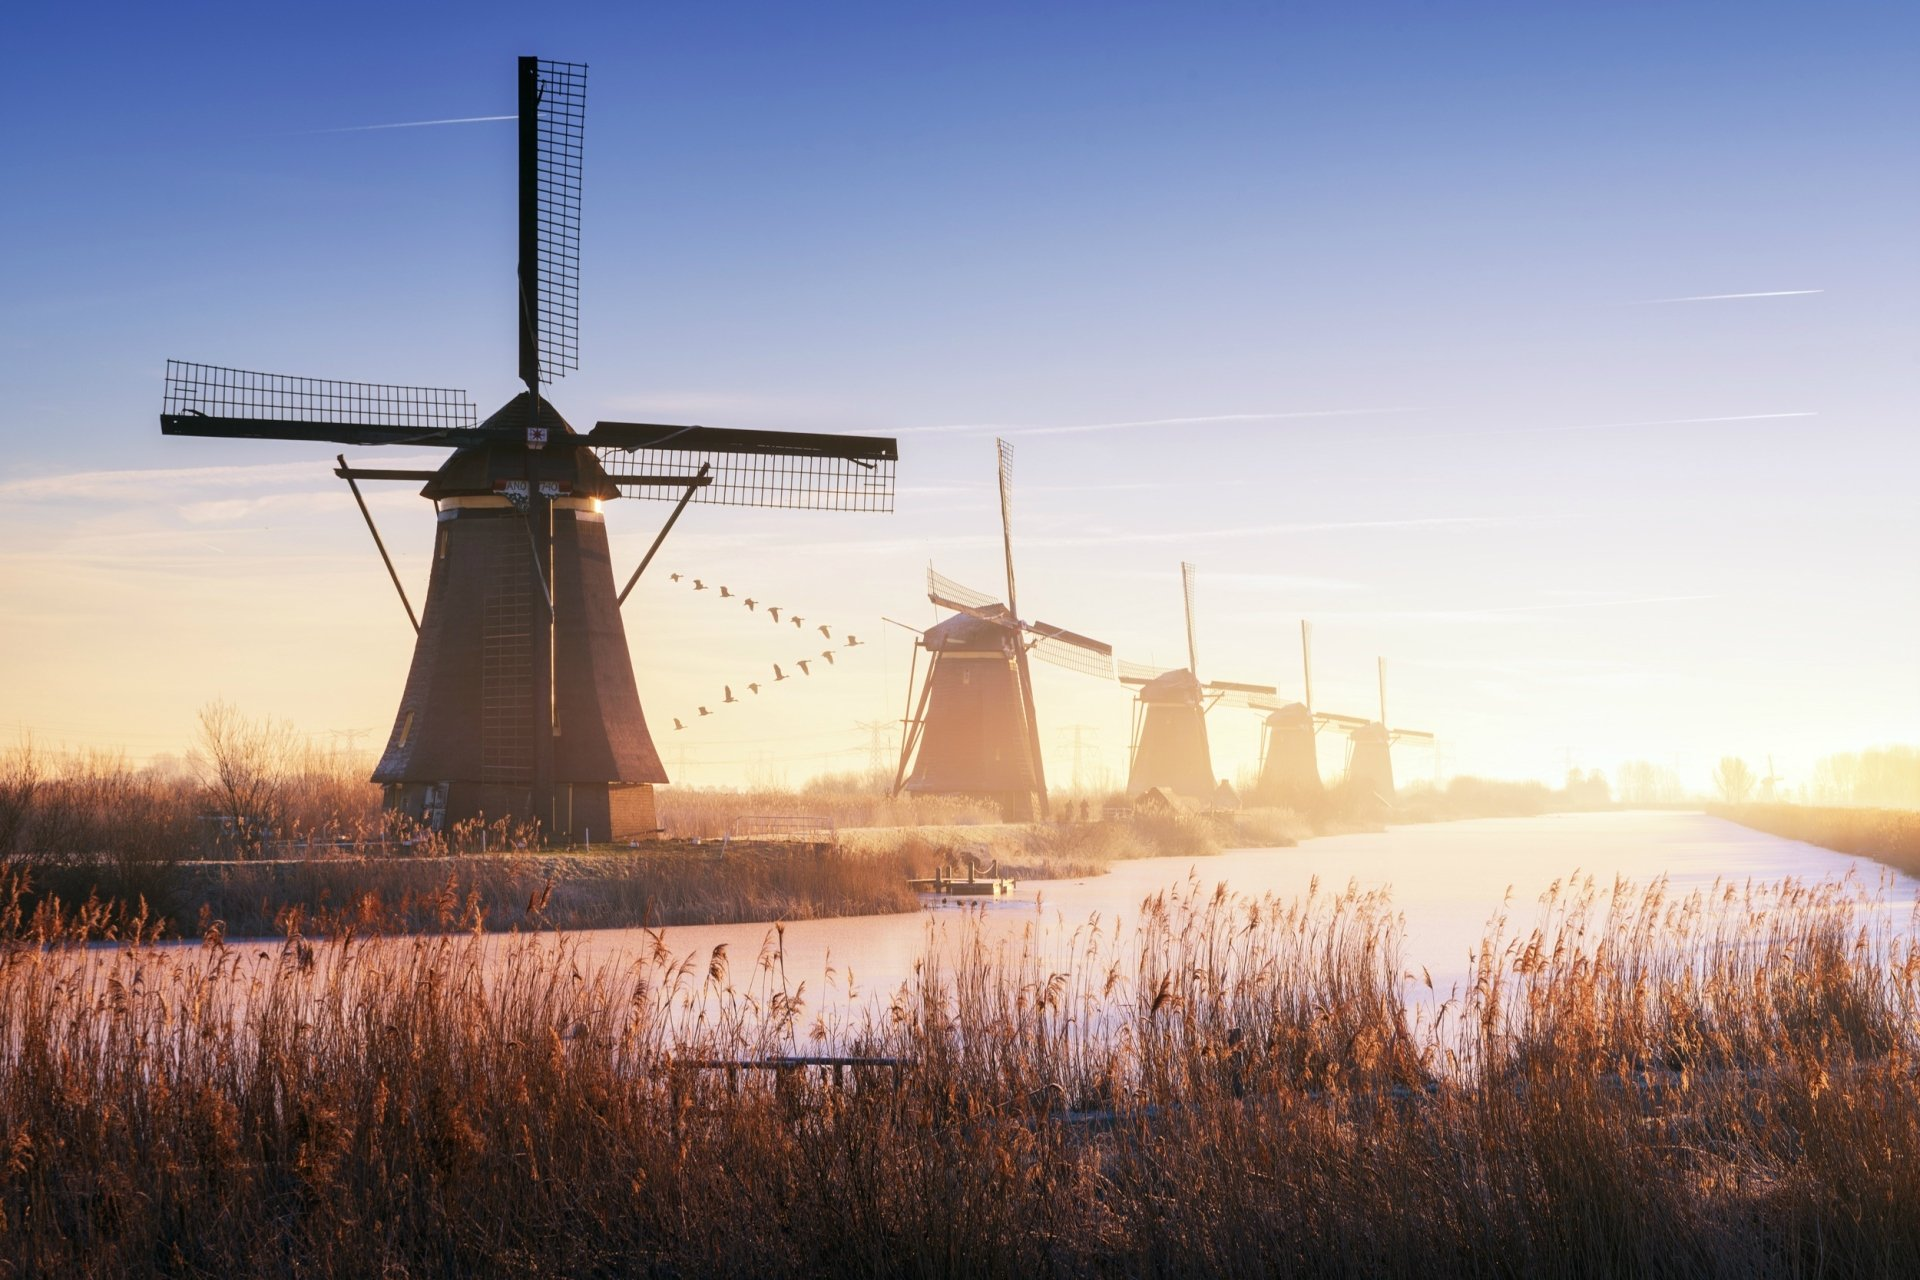 Man Made - Windmill  Building River Sunrise Wallpaper